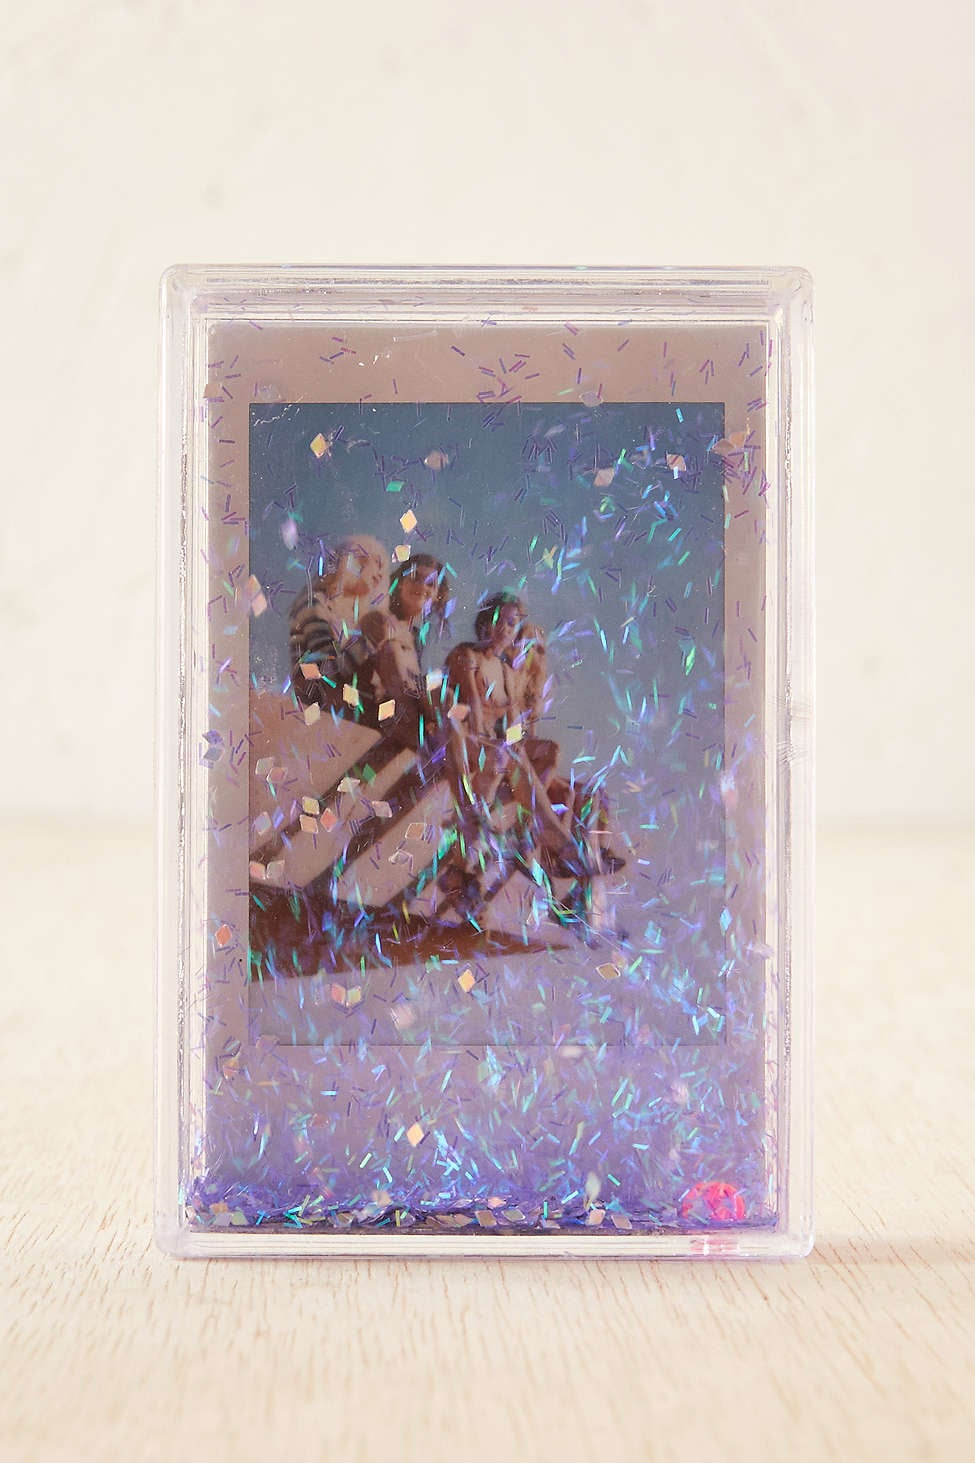 Mini Instax Glitter Picture Frame 6 50 Sparkly Gifts